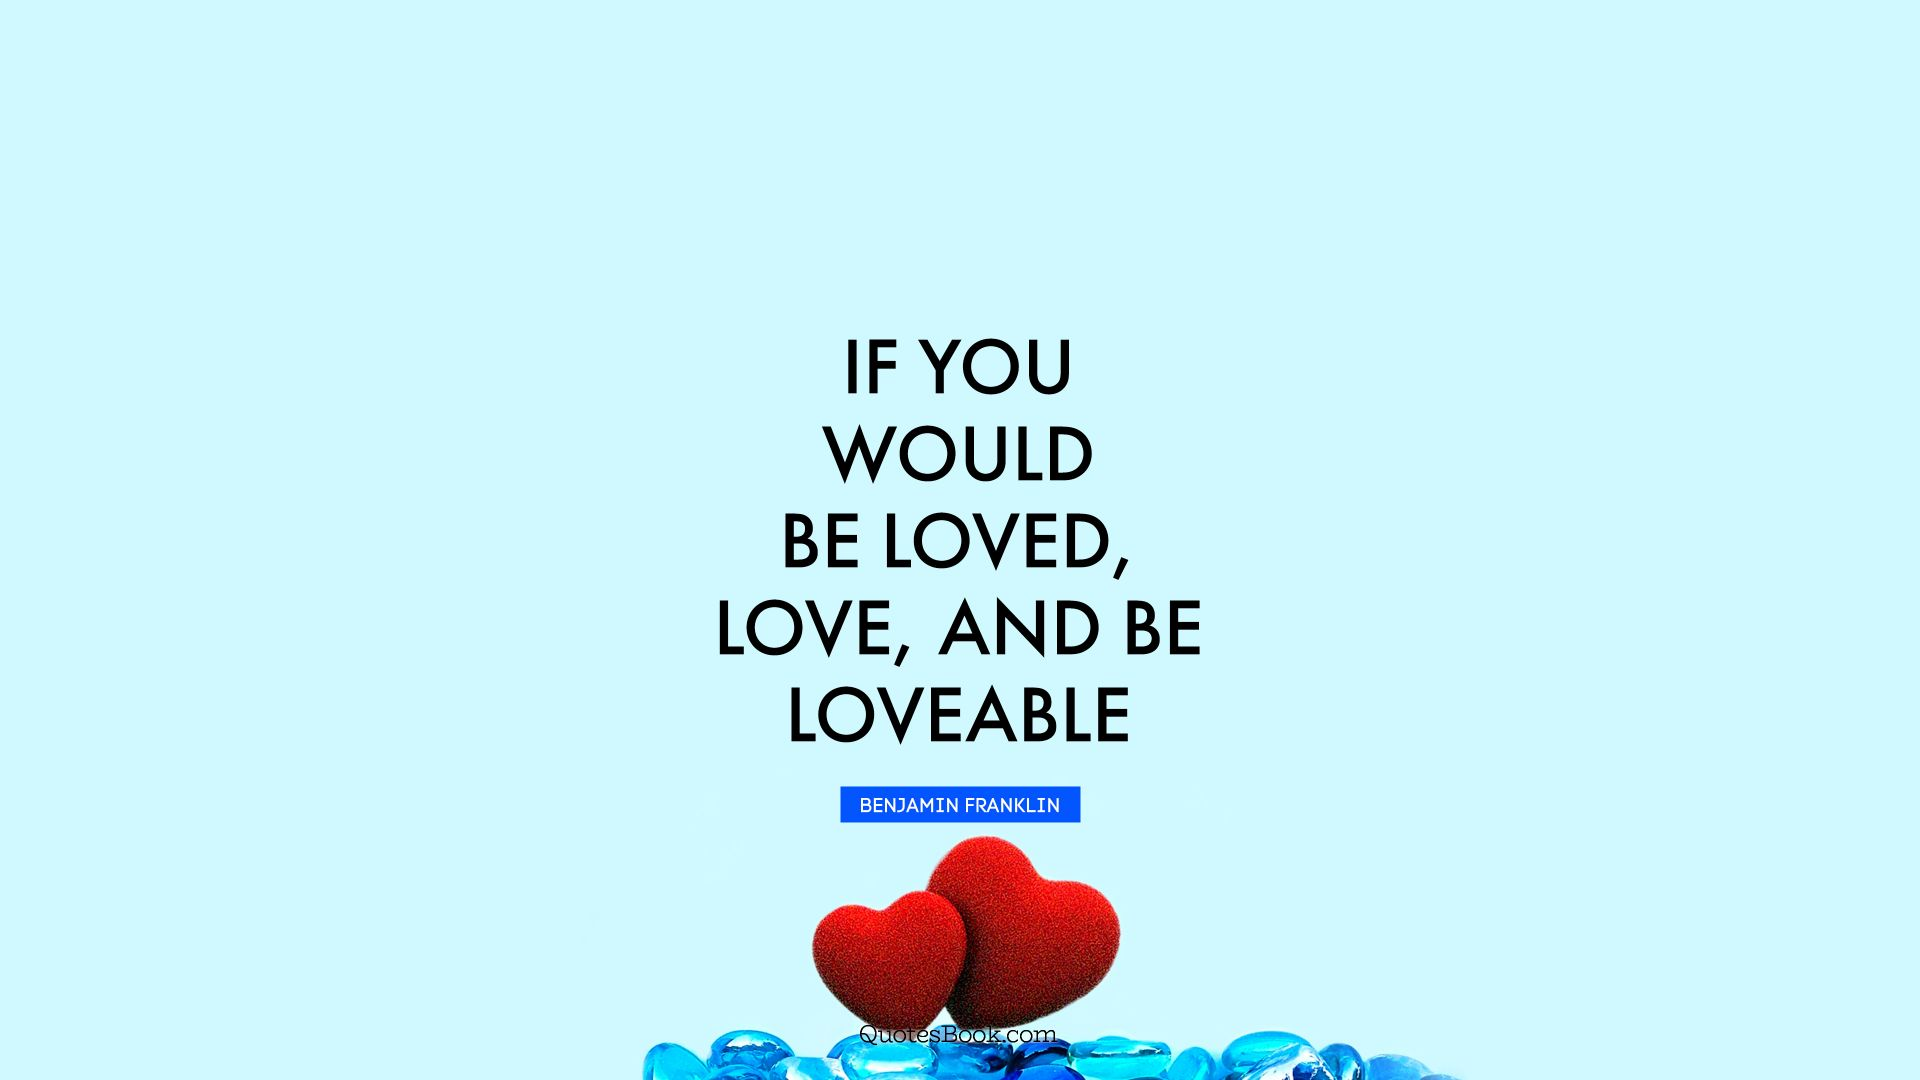 If you would be loved, love, and be loveable. - Quote by Benjamin Franklin